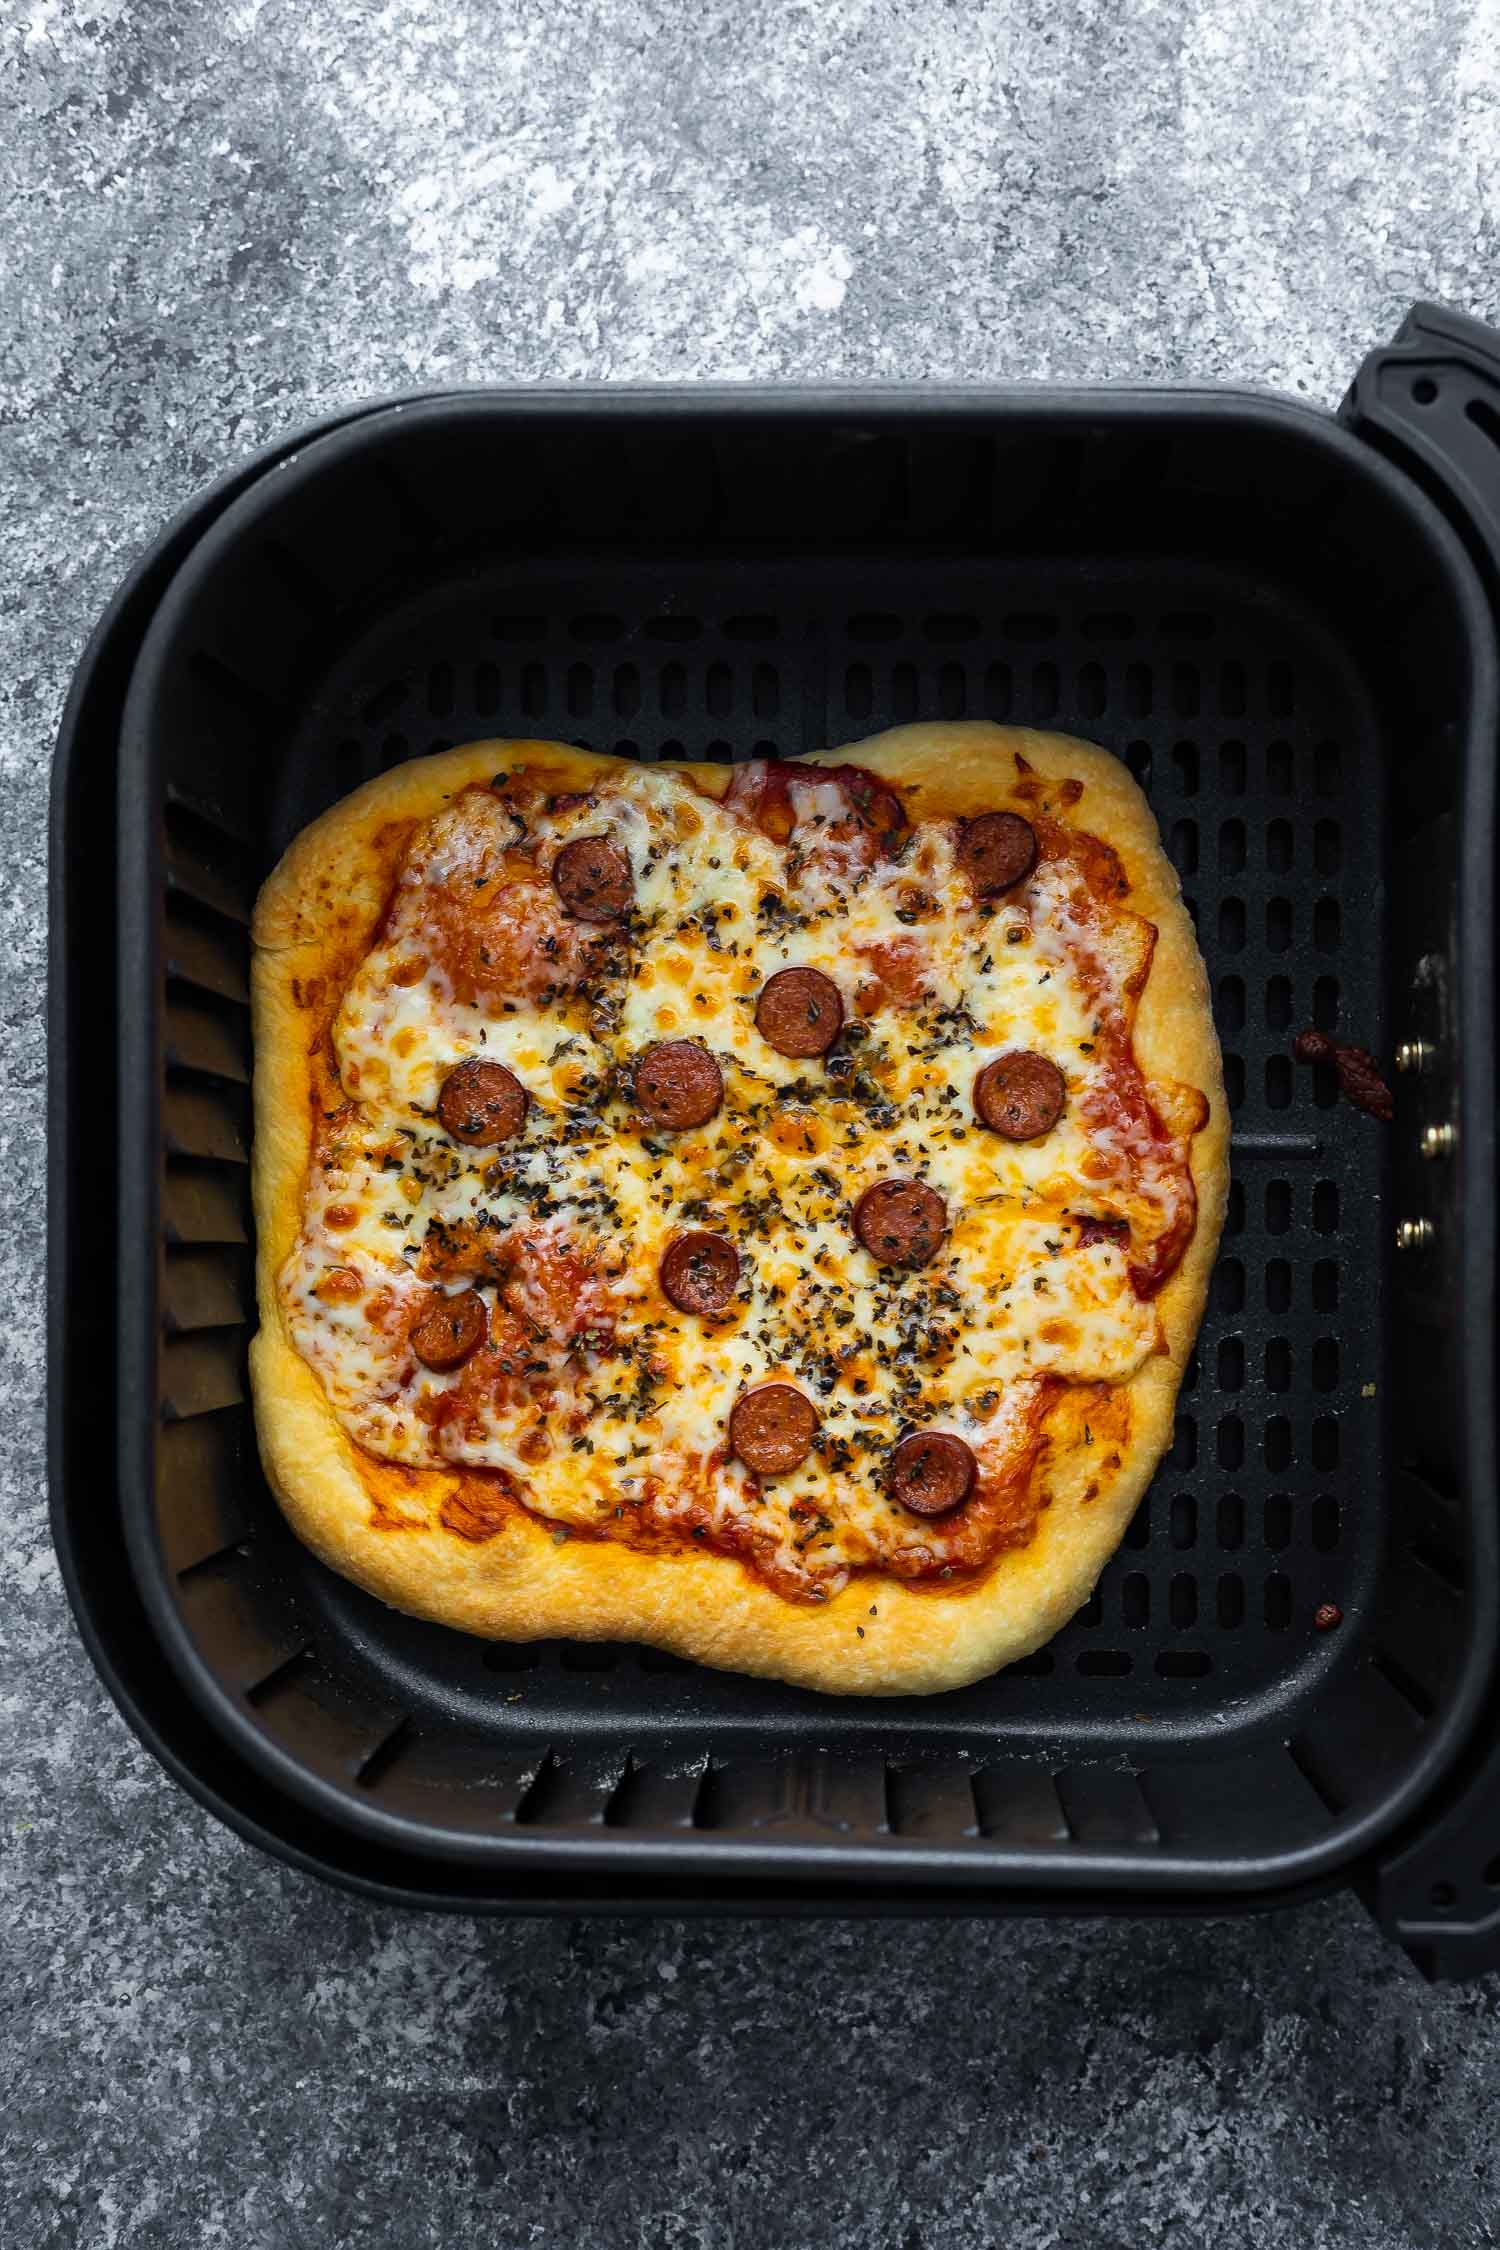 overhead view of cooked pizza in air fryer basket